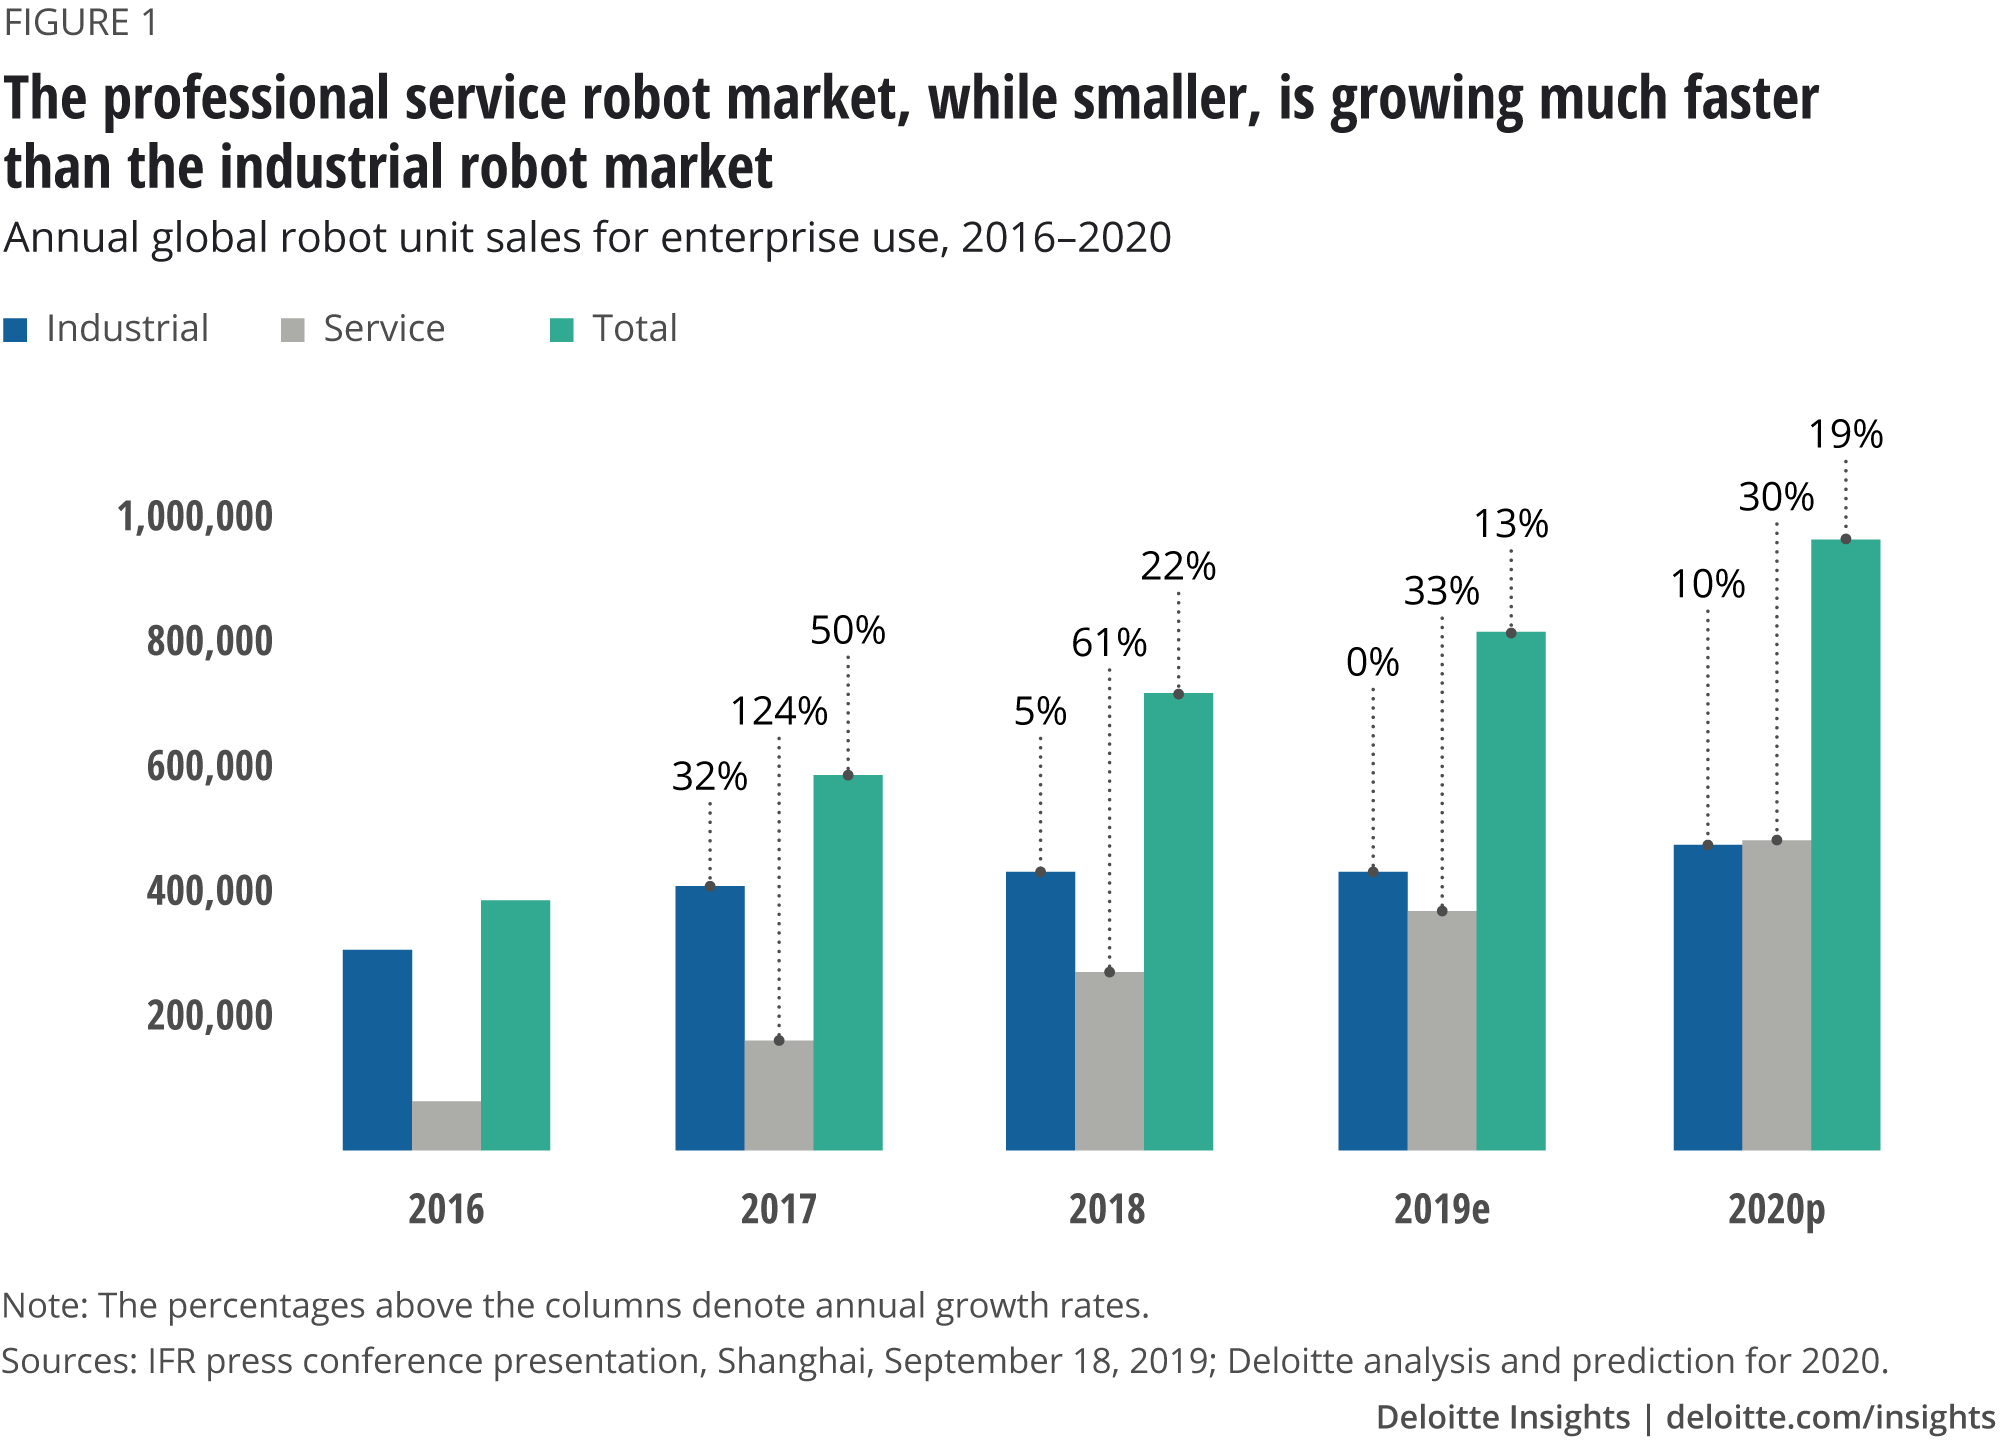 The professional service robot market, while smaller, is growing much faster than the industrial robot market